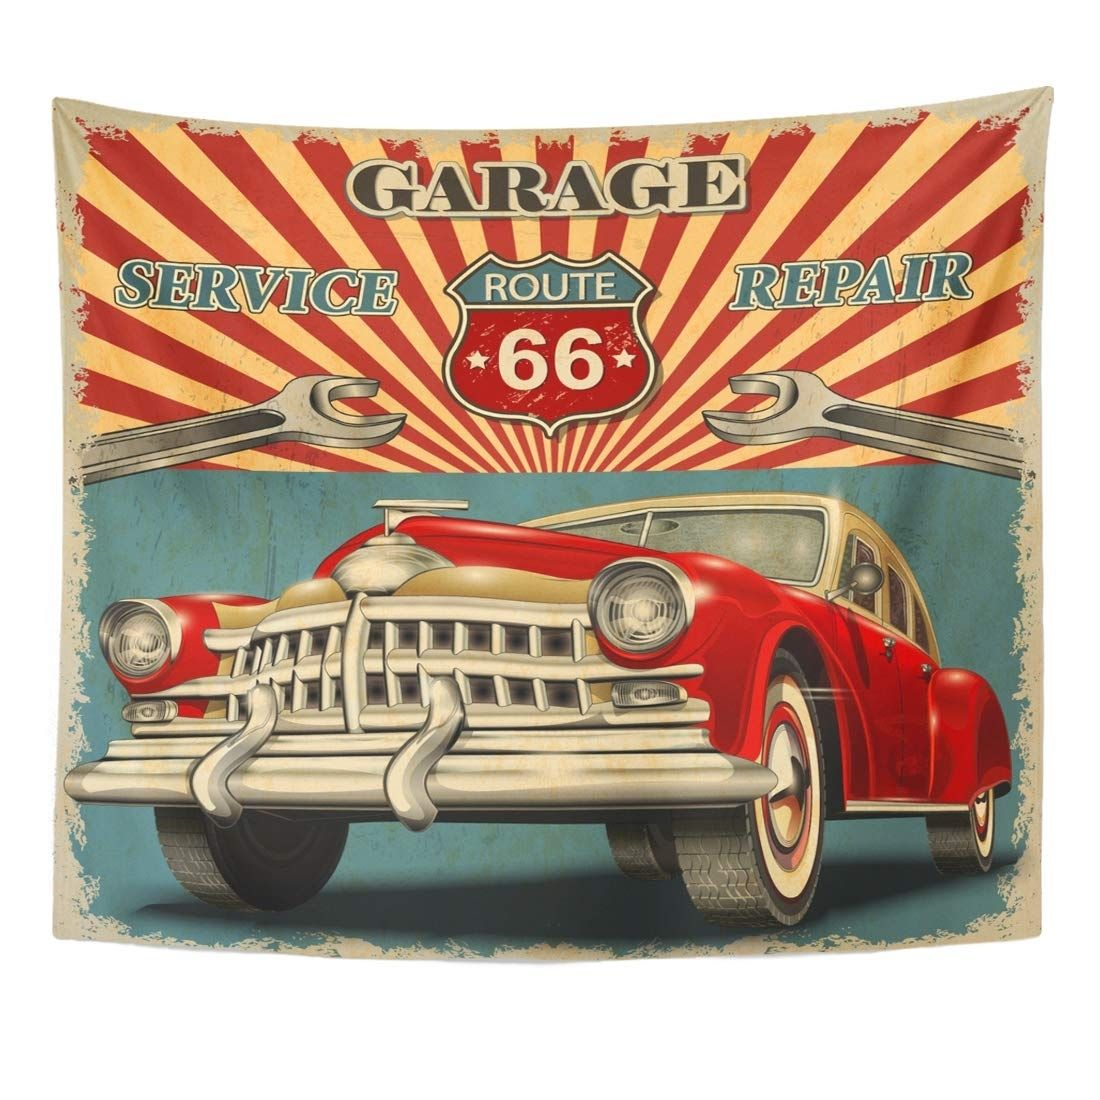 Classic Car Vintage Garage Retro Route American Sign Mechanic Wall Art Hanging Tapestry 60x80 Inch Retro Poster Vintage Garage Retro Travel Poster